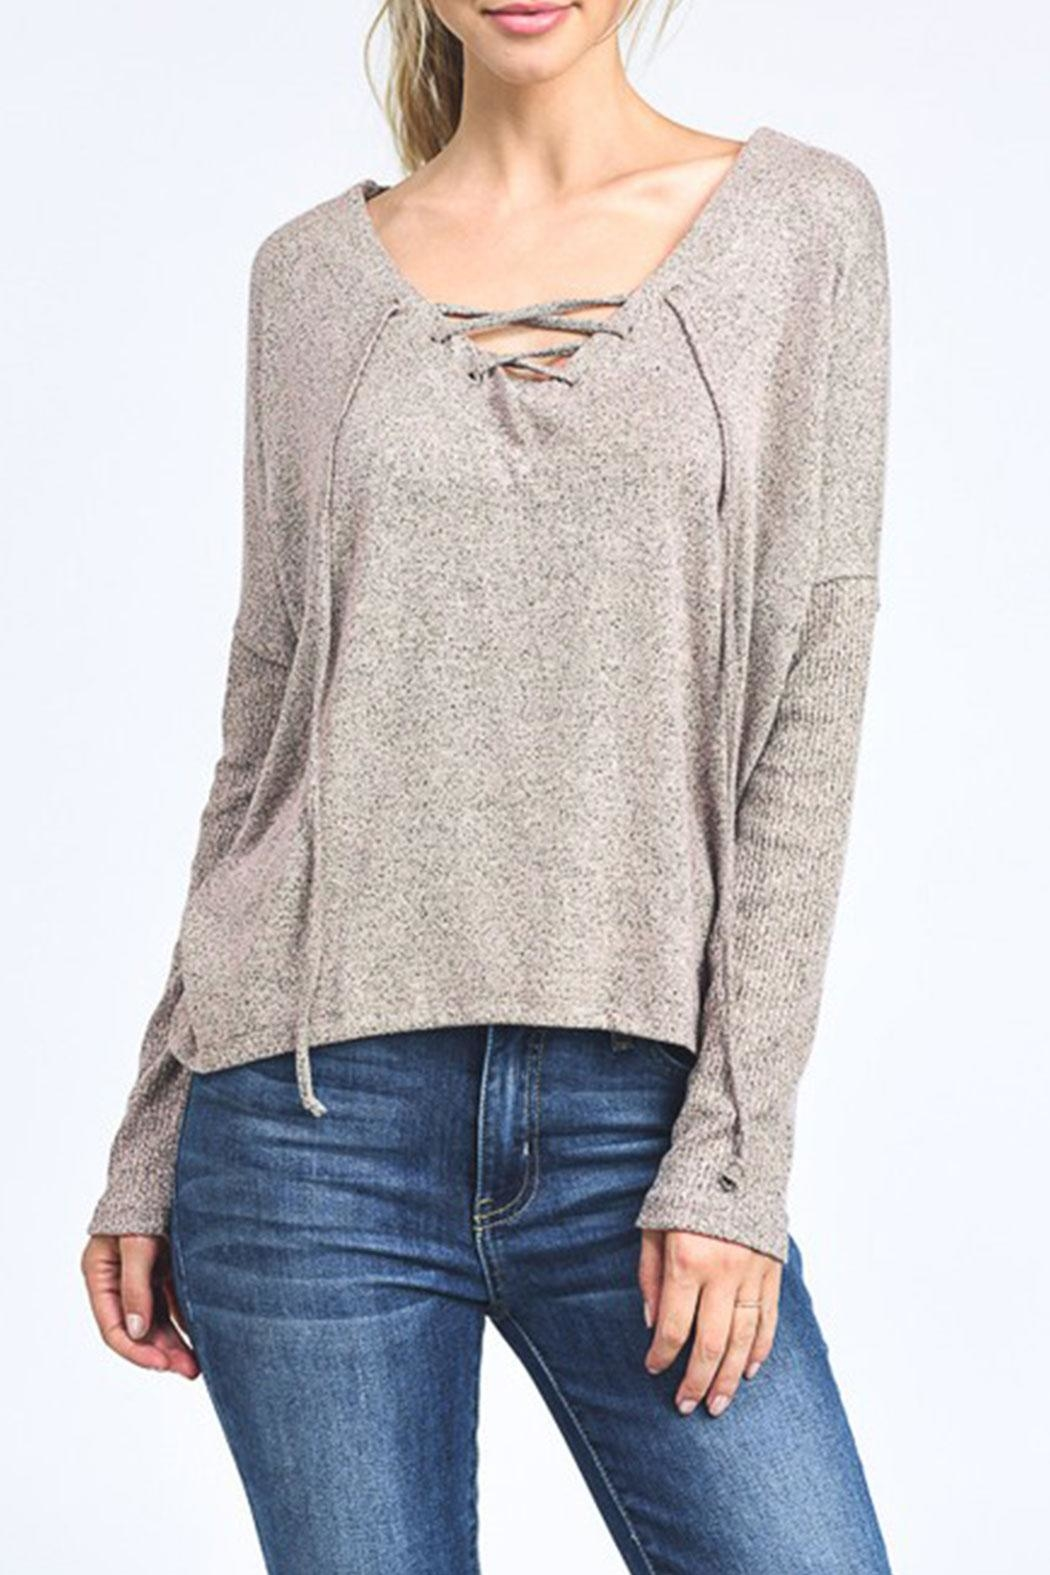 Mono B Lace Up Pullover Top - Main Image